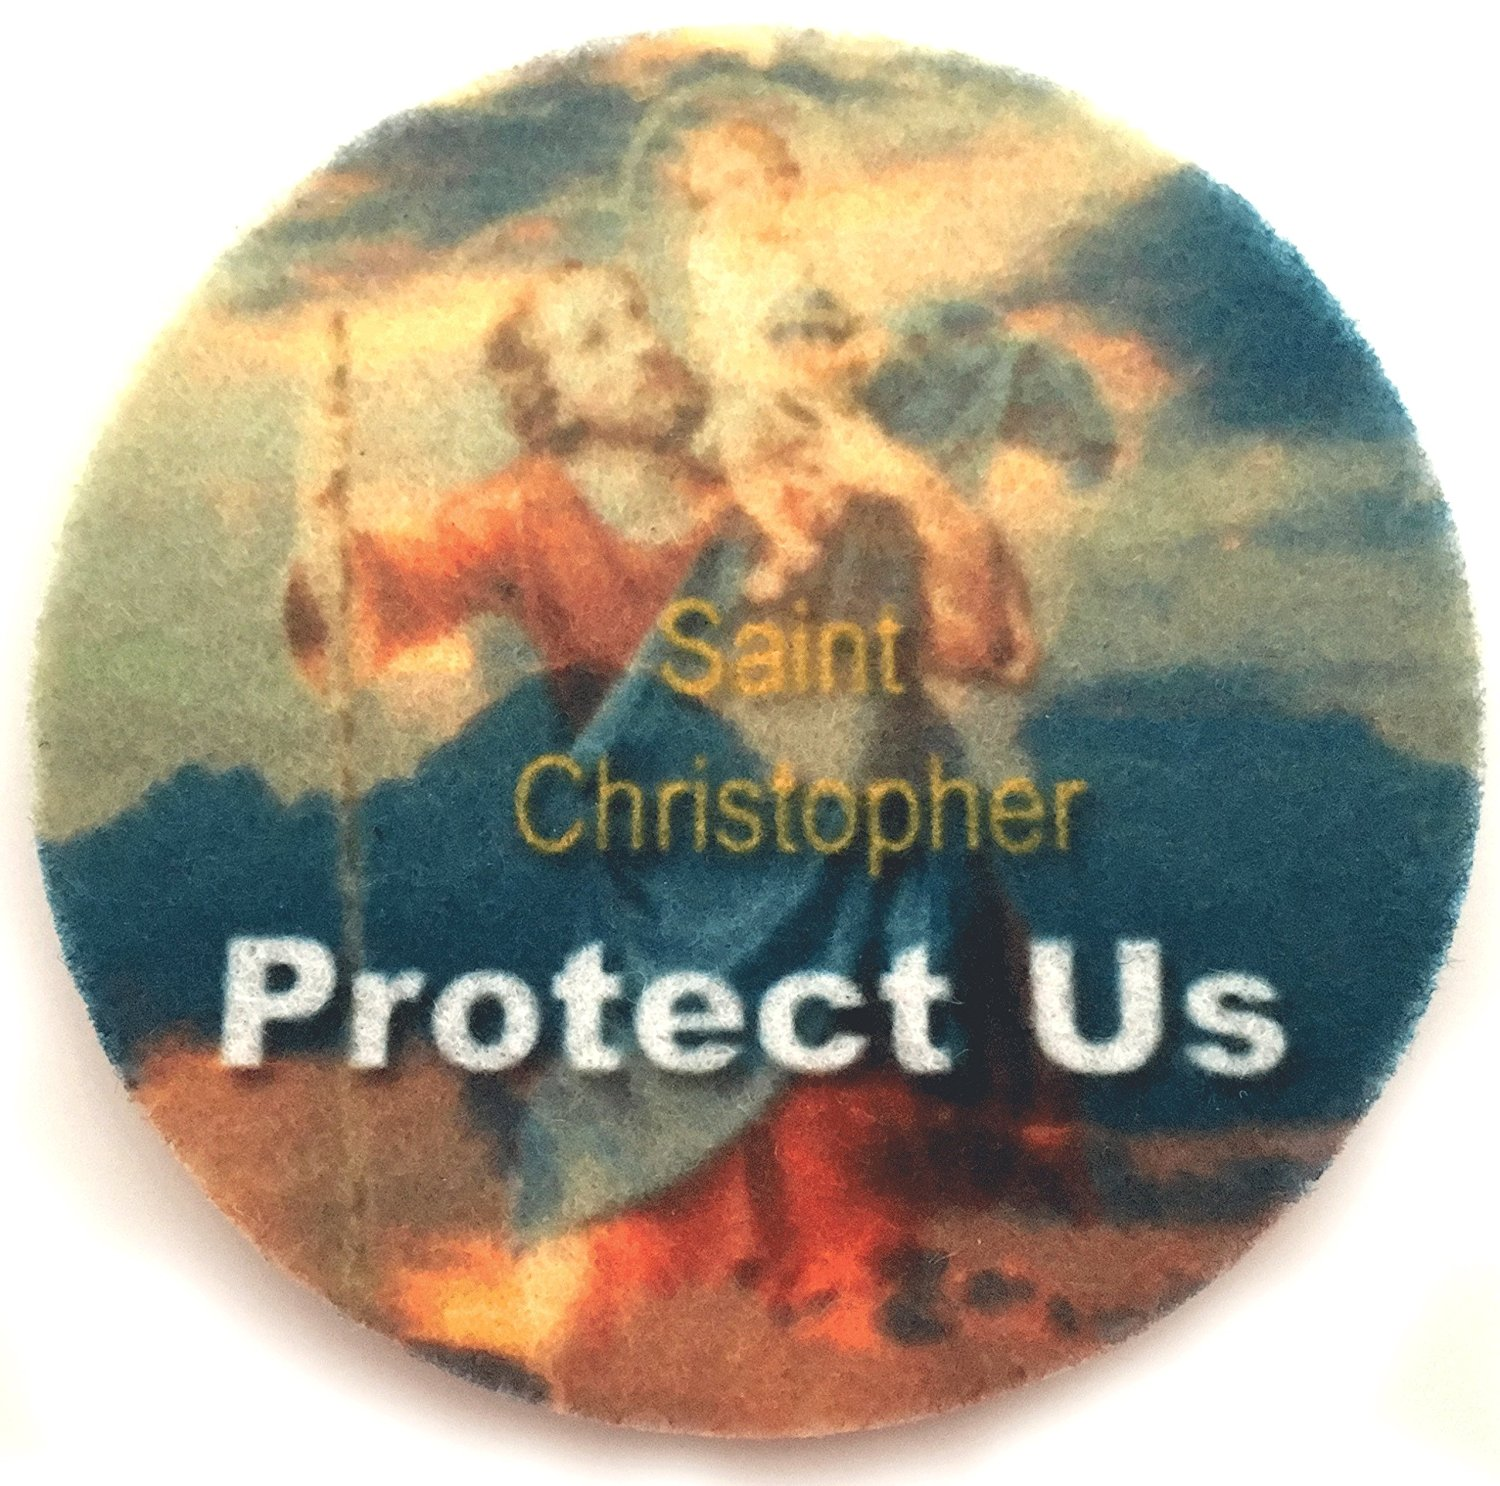 Saint Christopher Protect Us Car Coasters - Set of two super absorbent car coasters for your cars cup holder - Car Cup Holder Coasters